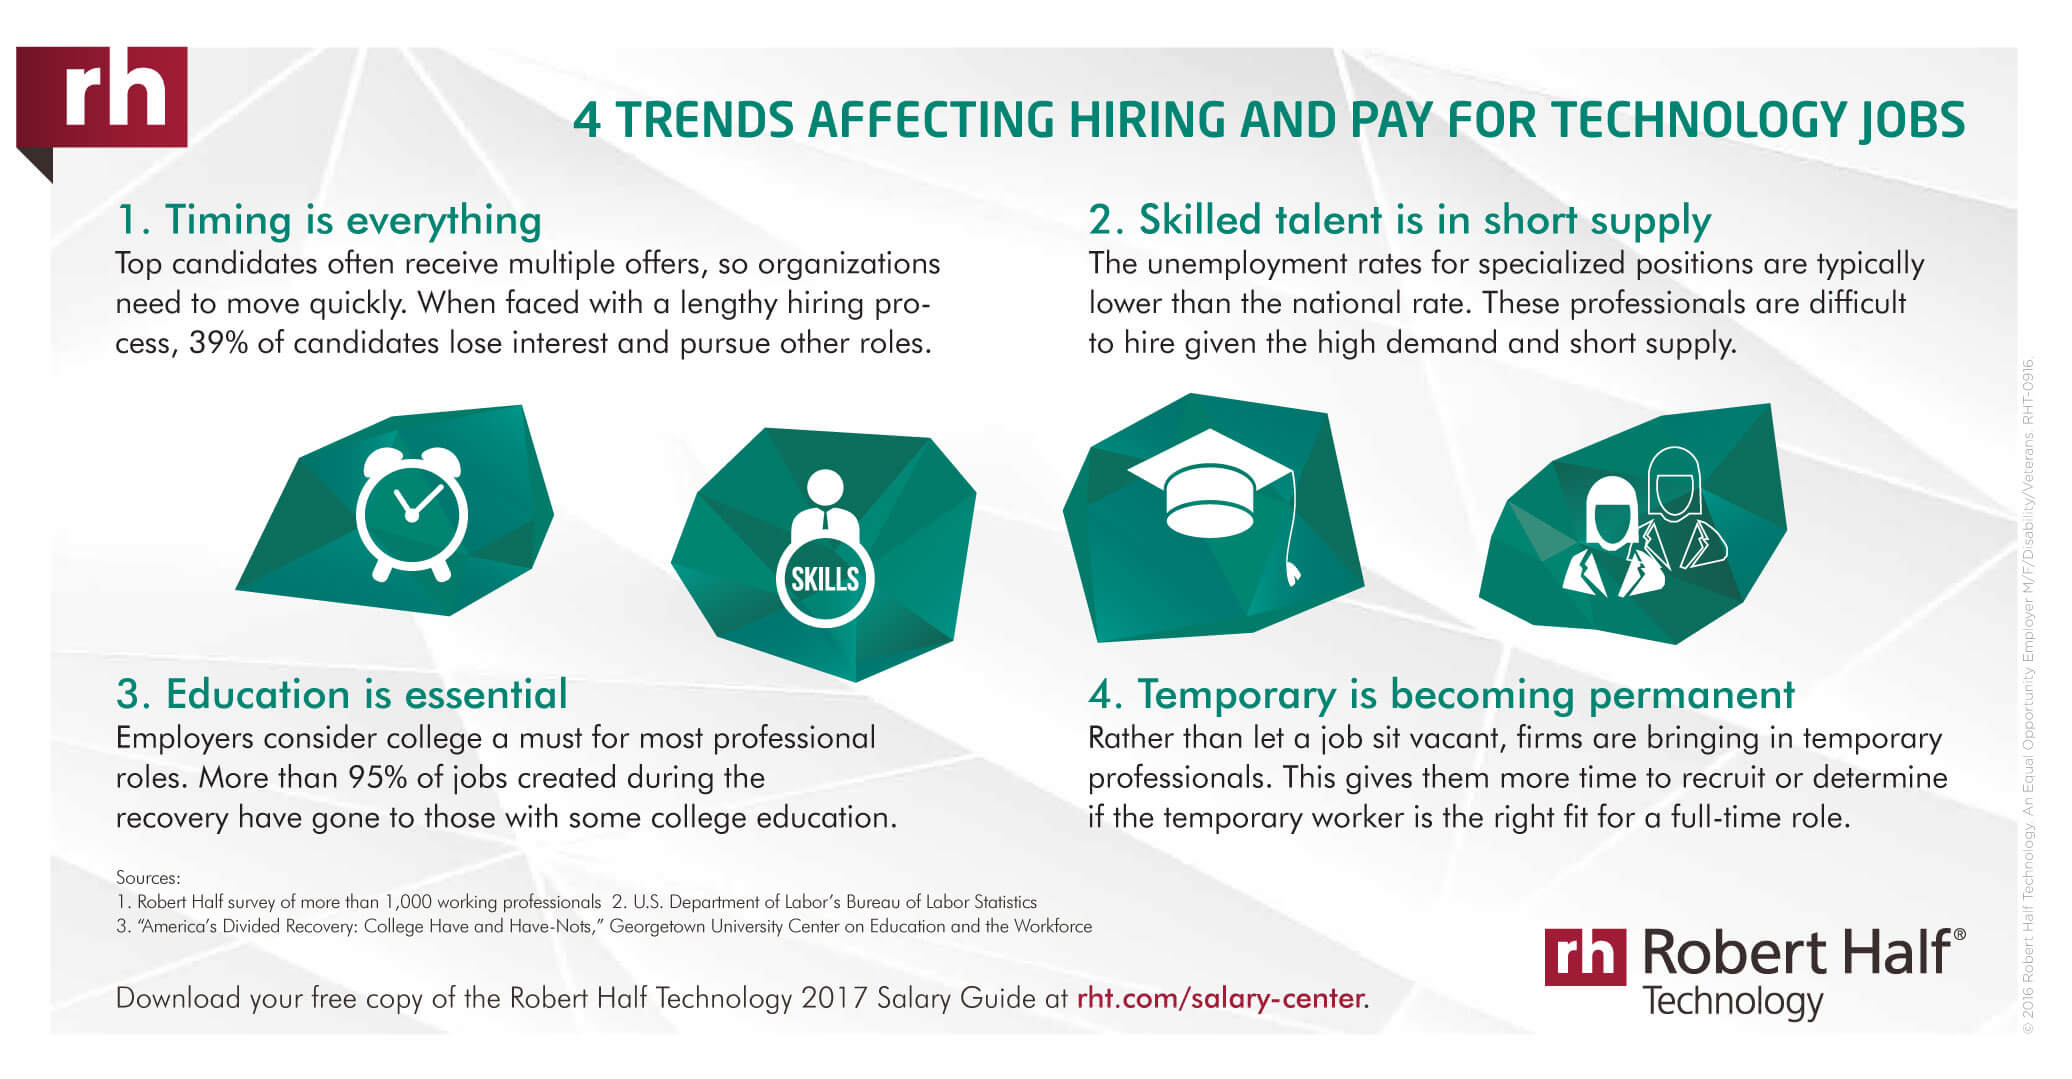 4 Trends Affecting Hiring and Pay for Technology Jobs